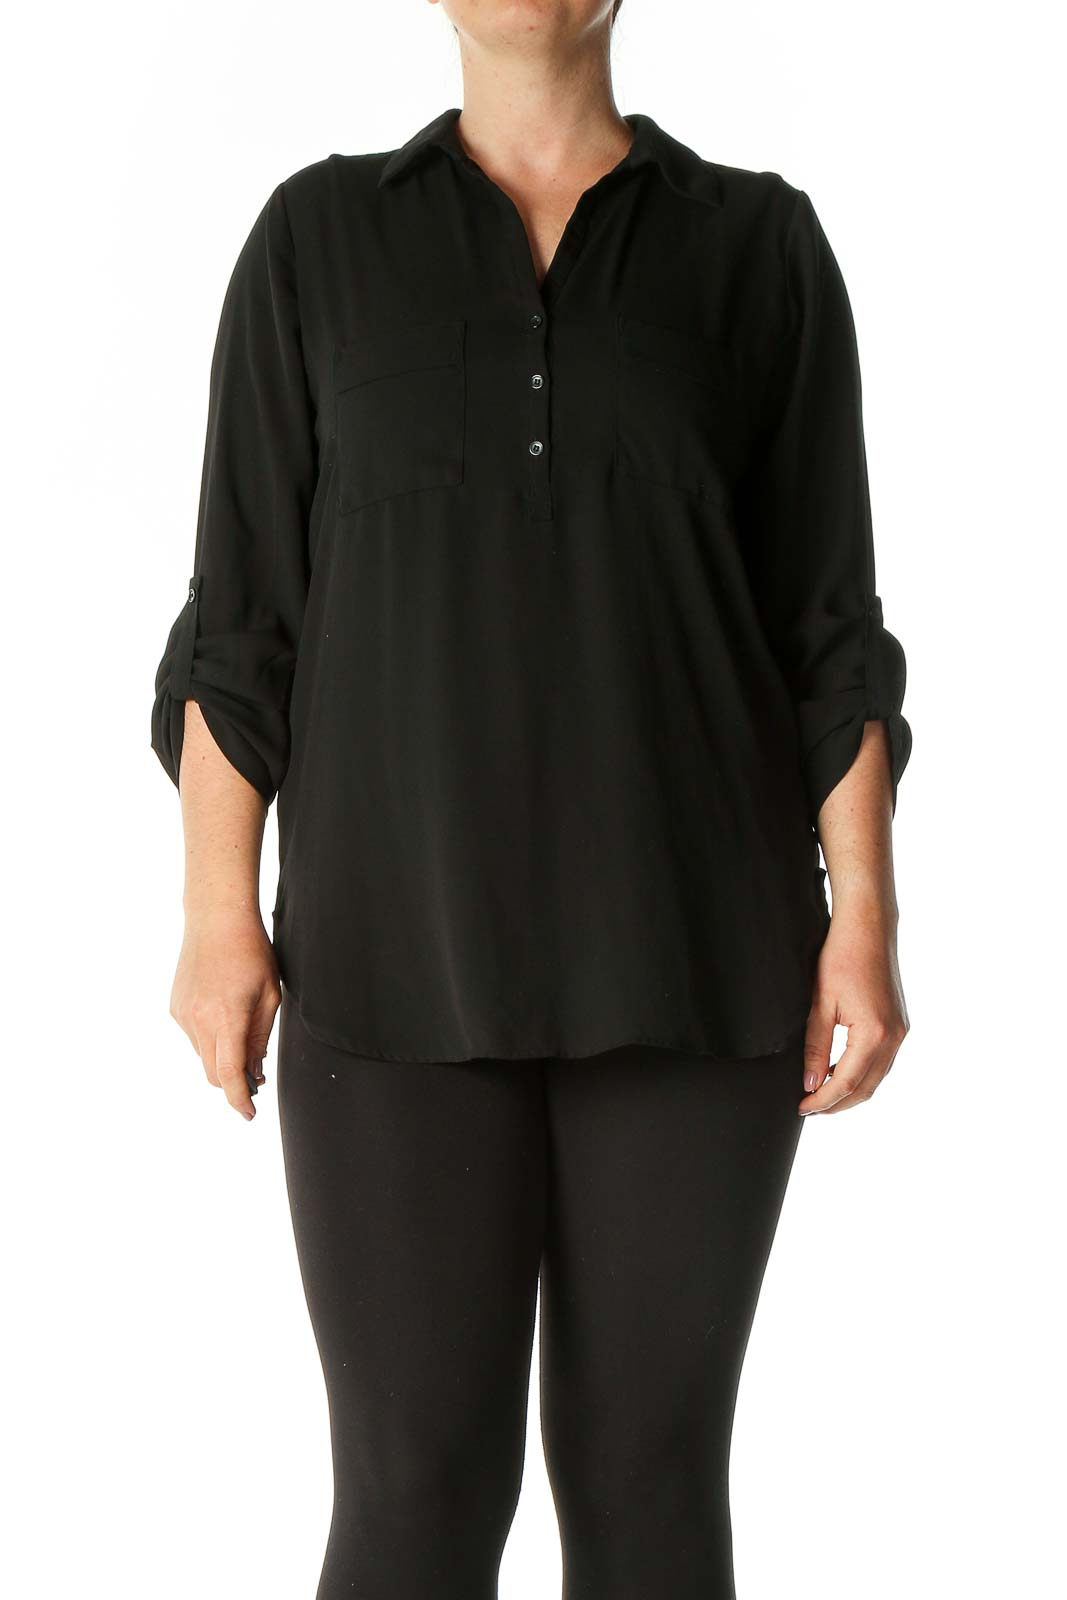 Black Solid Casual Polo Shirt Front